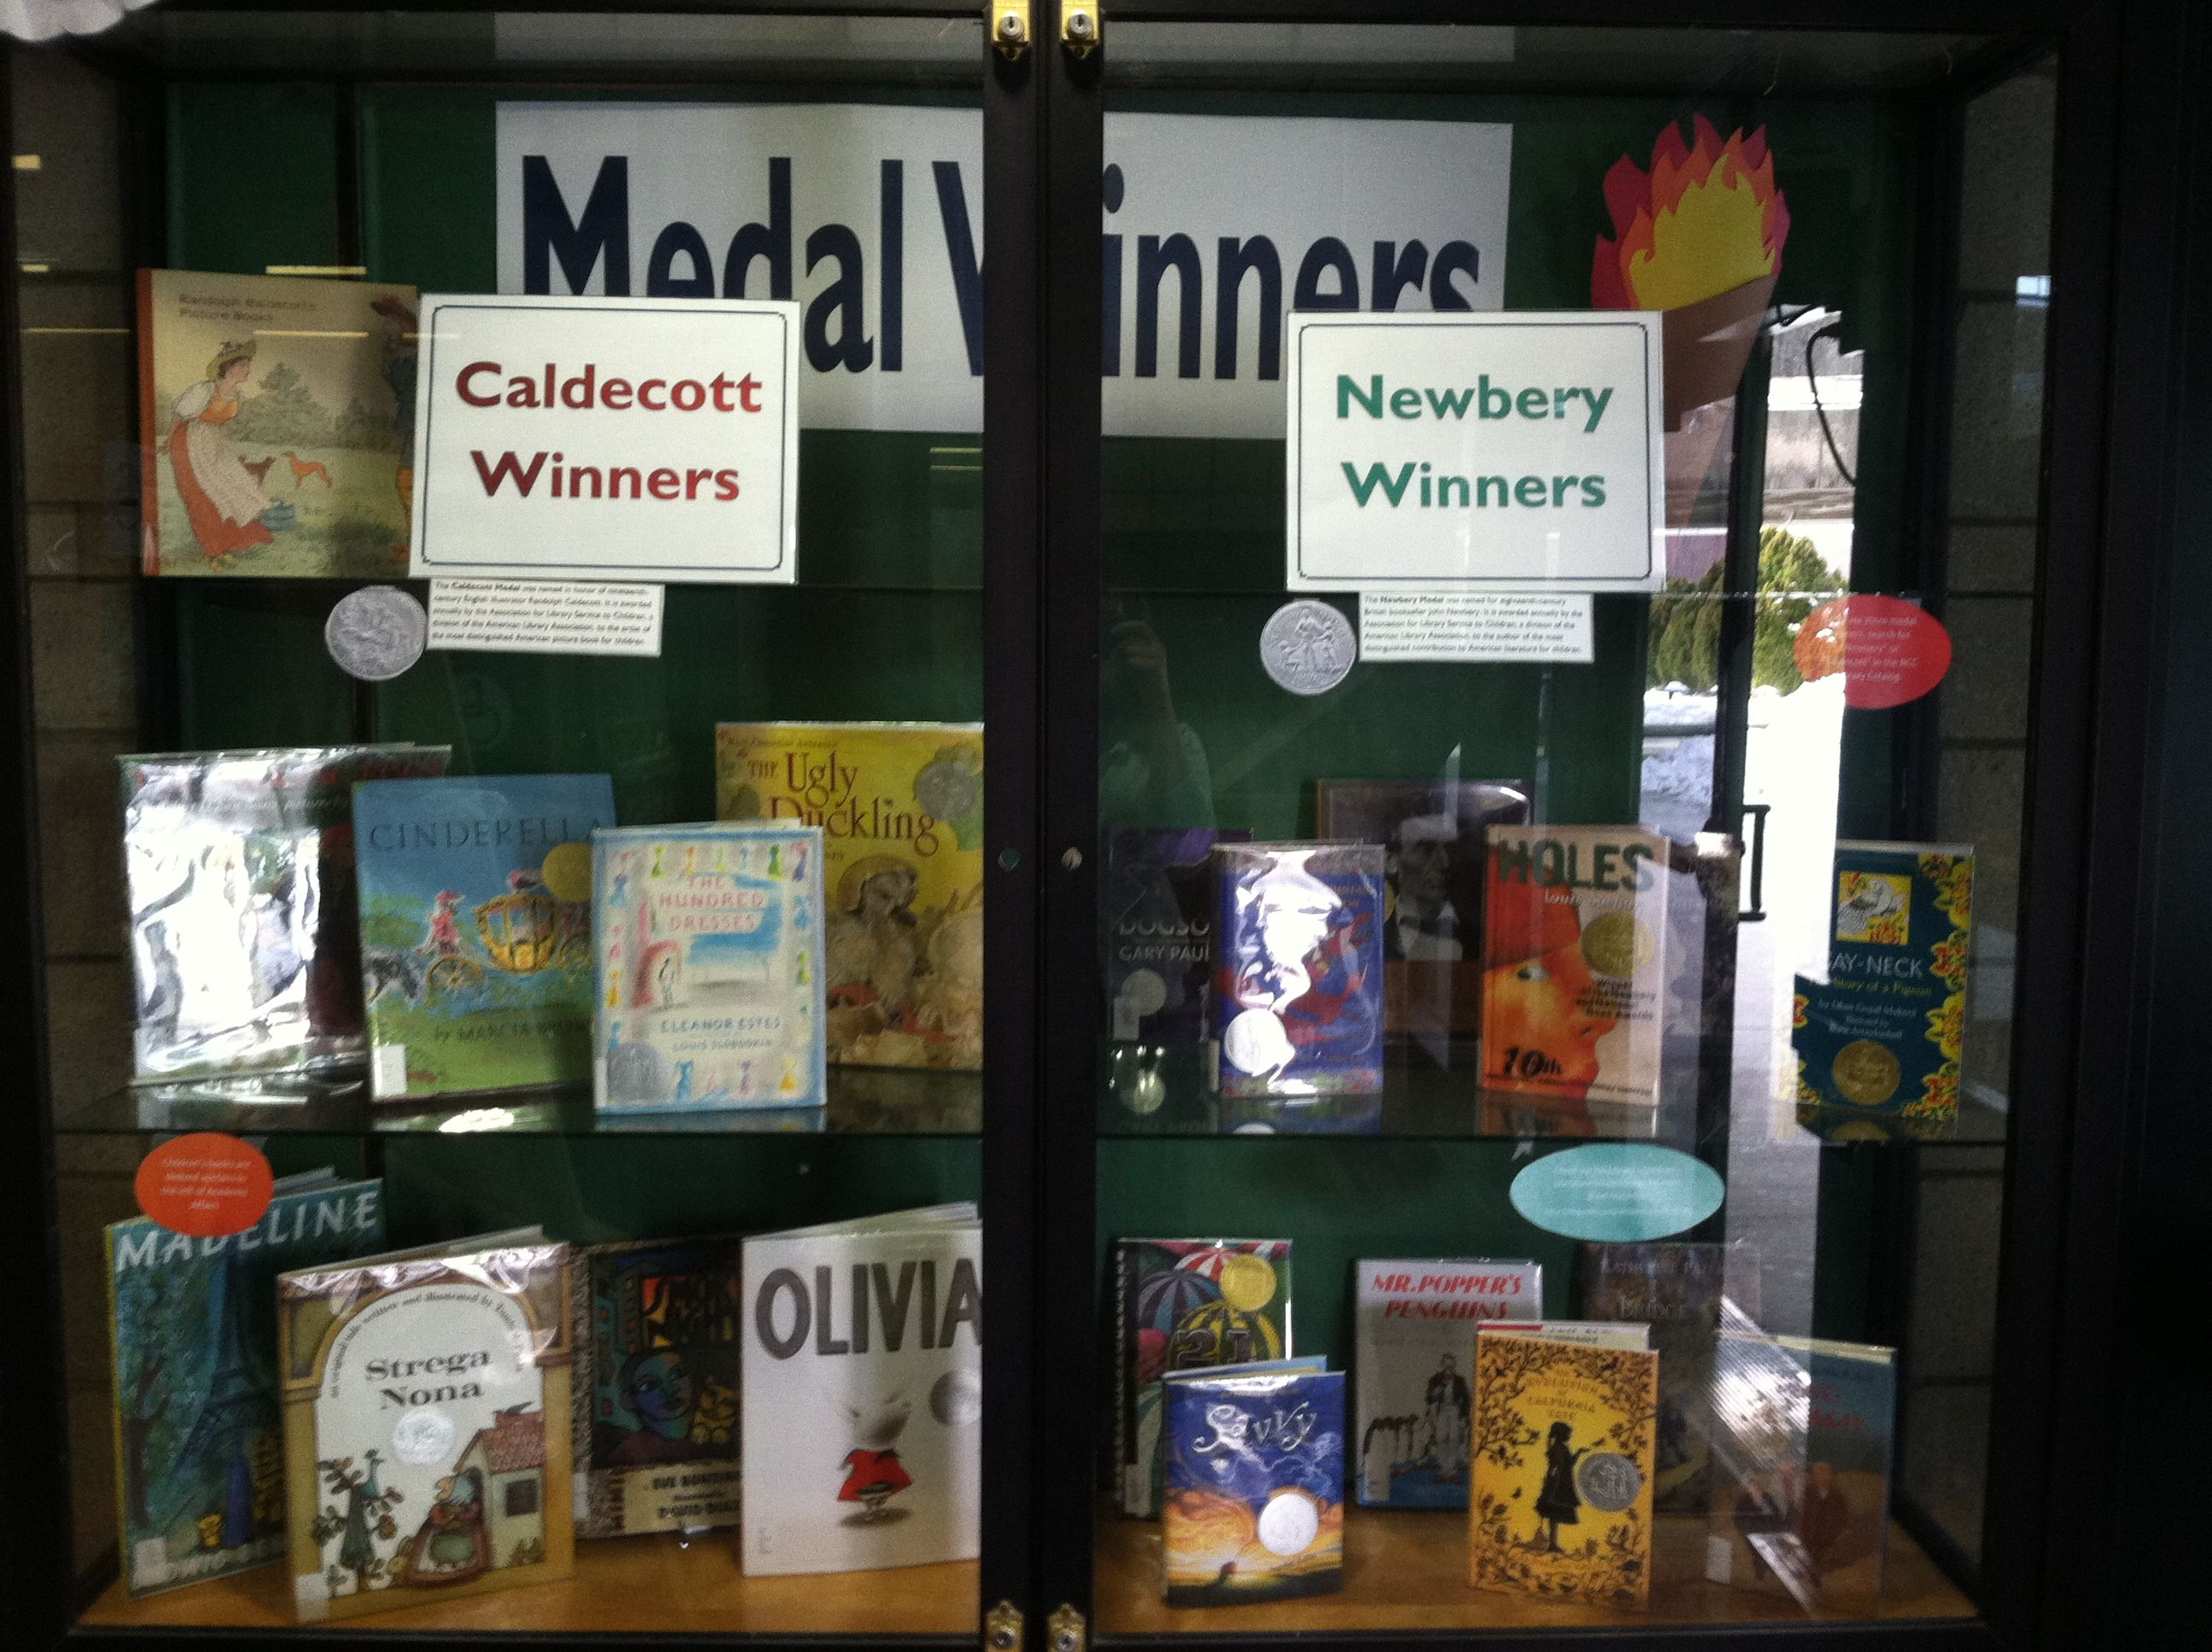 Medal Winners Book Display Of Caldecott And Newbery Winners Showcase